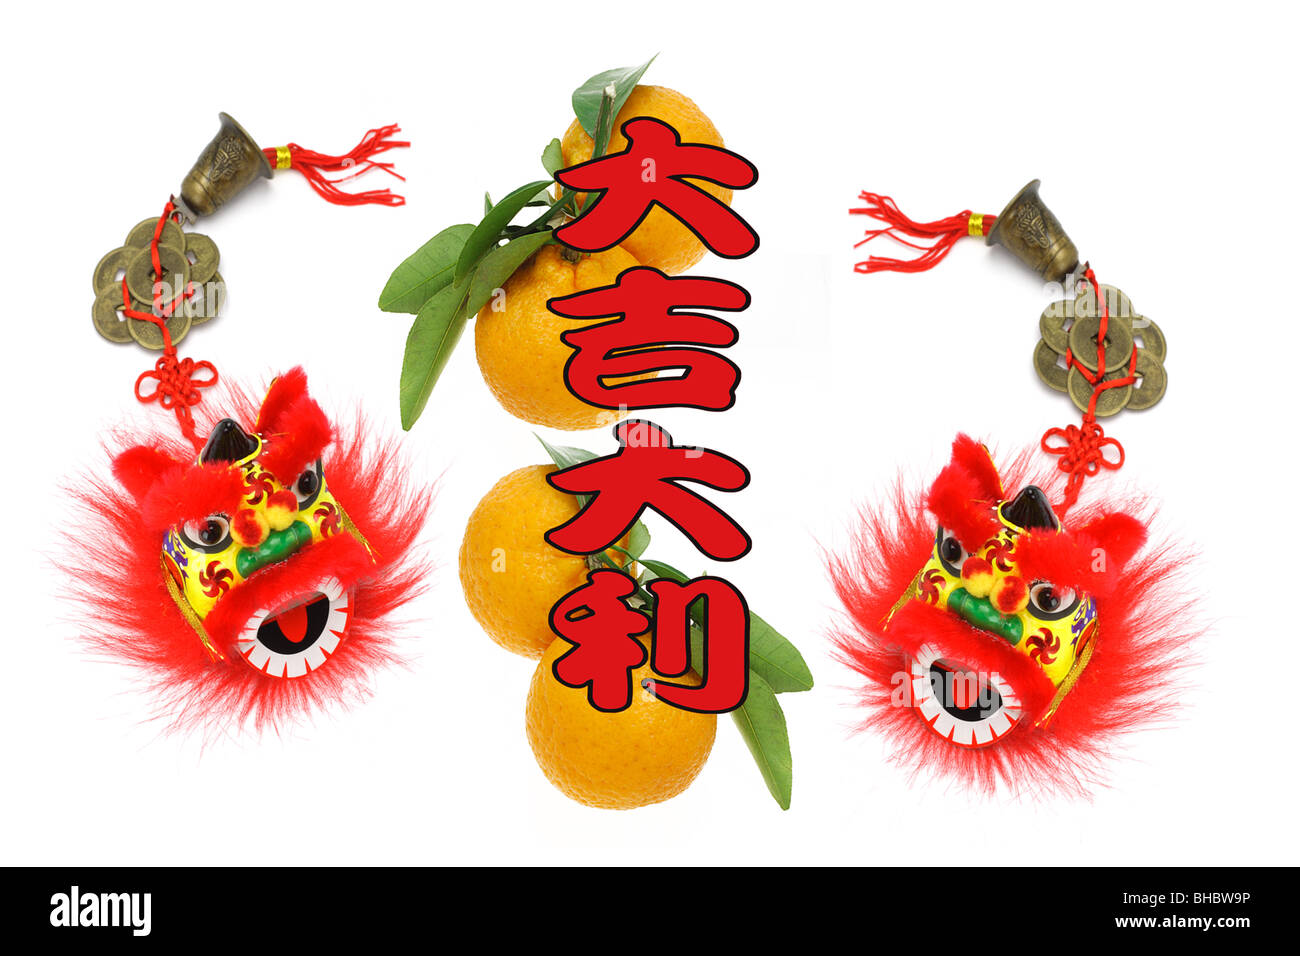 Chinese Lunar New Year Greetings With Lion Head Ornaments And